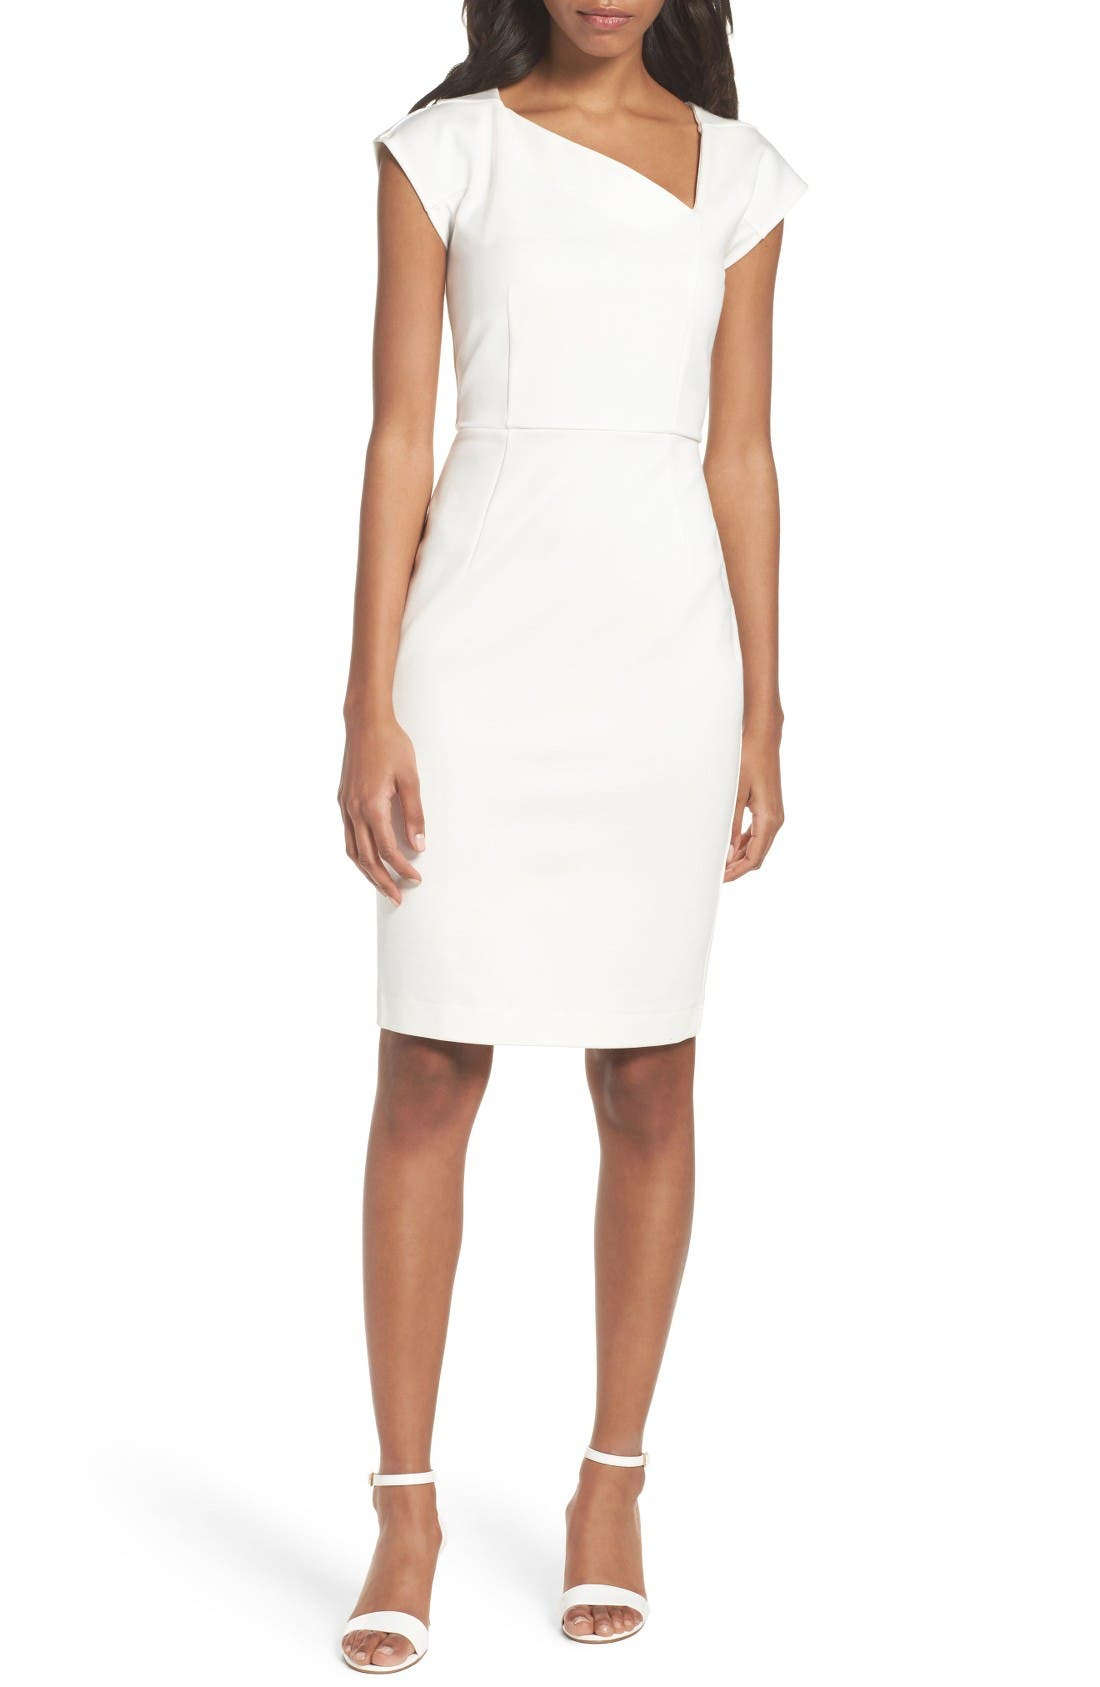 White Cocktail Dresses Nordstrom 12